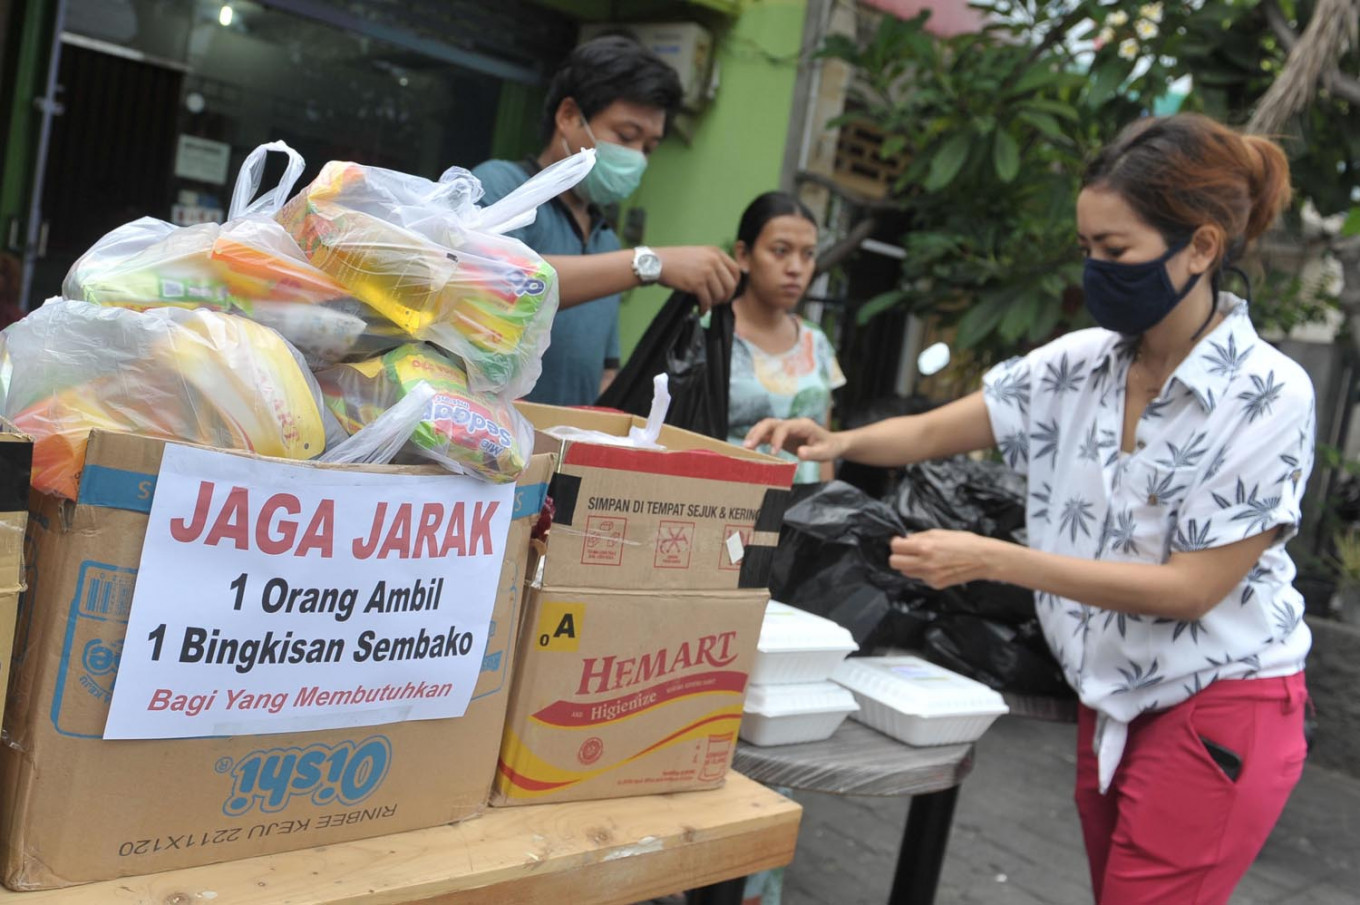 Helping others: Manado LGBT community raises funds for COVID-19 food aid